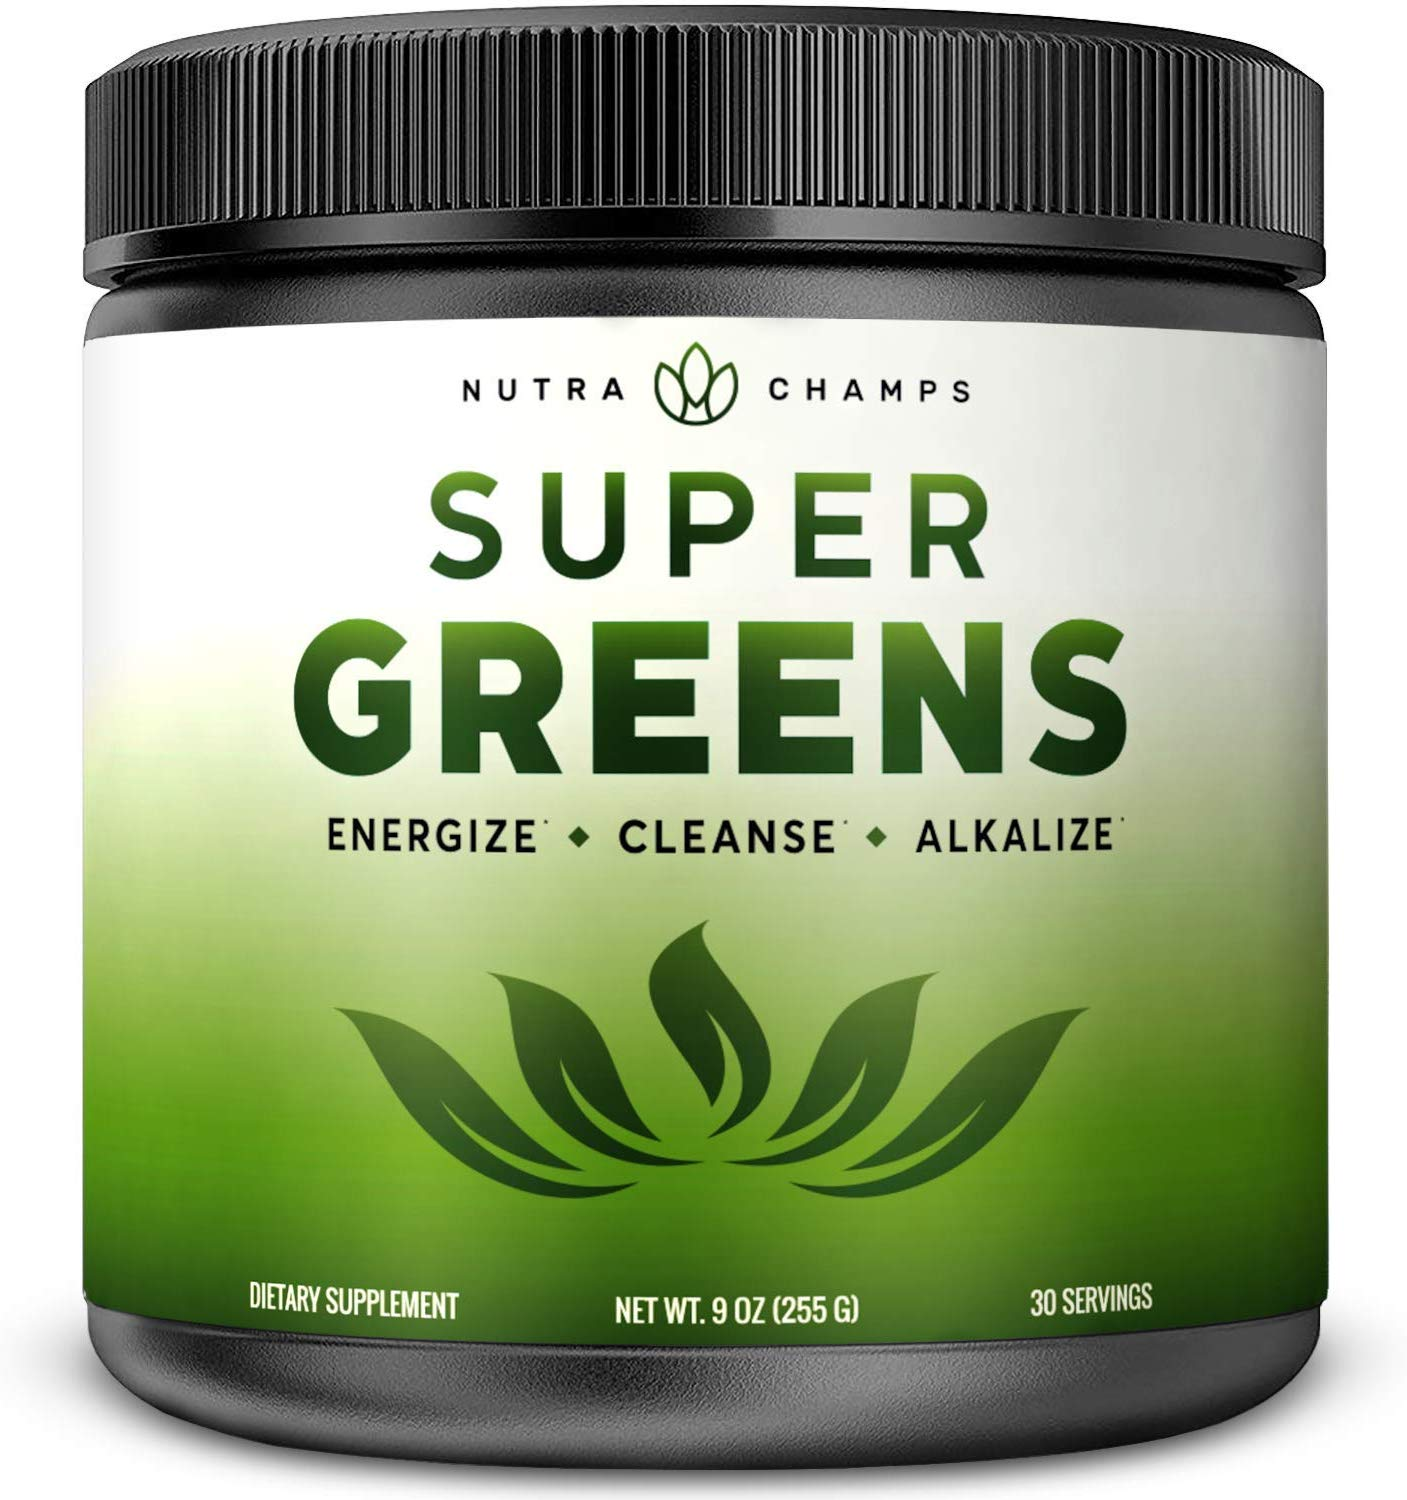 NutraChamps Super Greens Powder Superfood